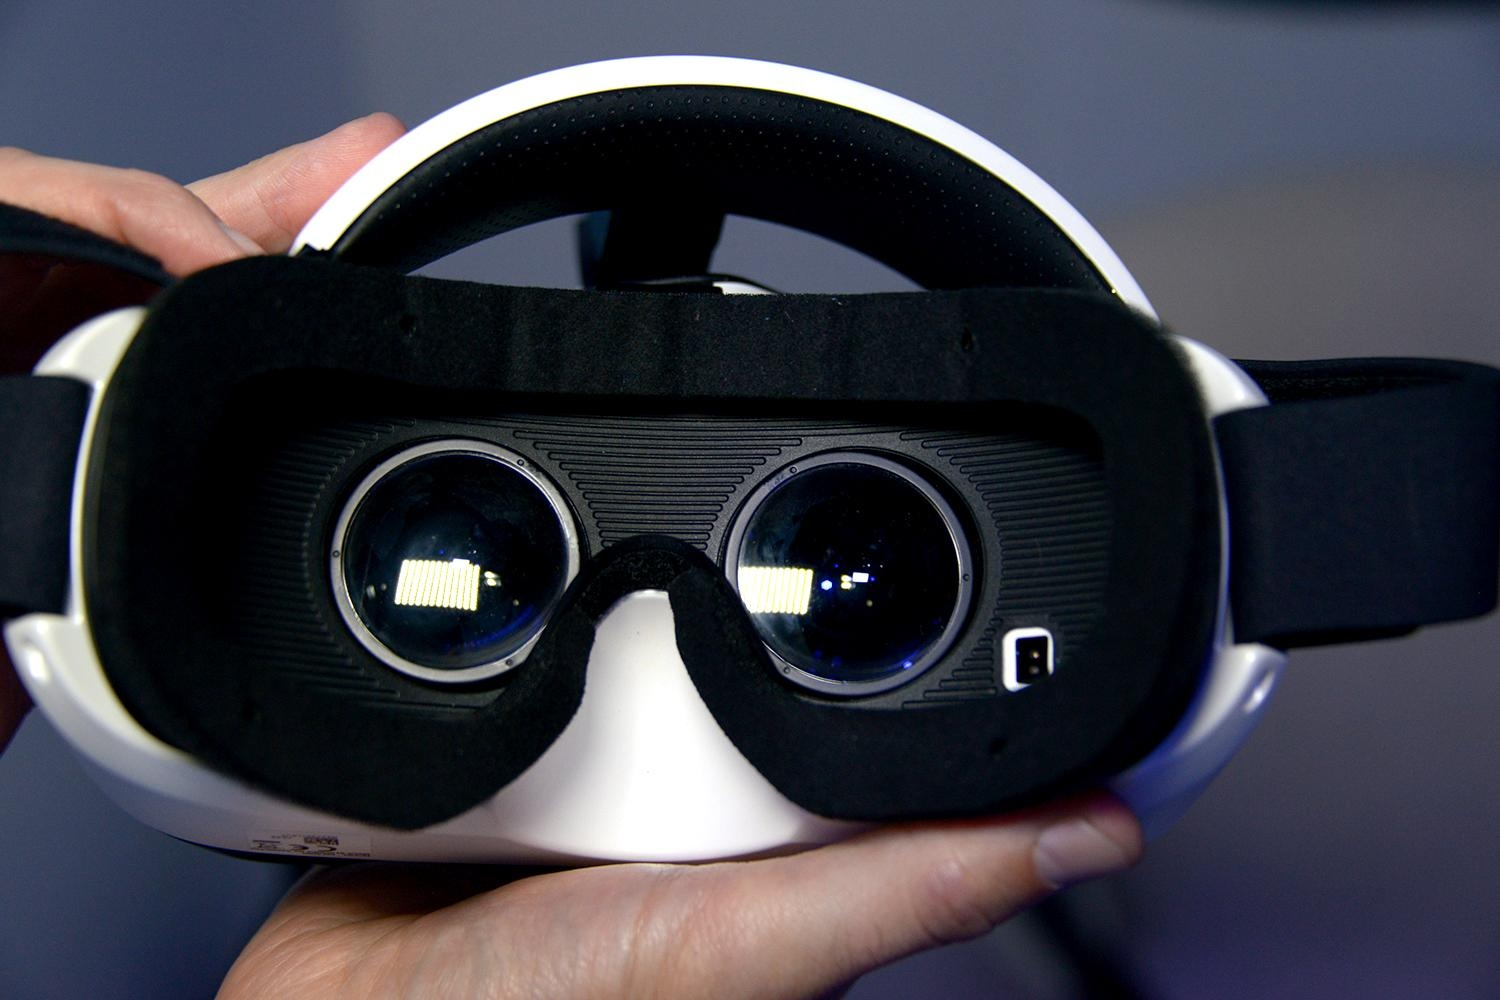 Samsung Gear VR - Enjoy the Immersive Experience Anywhere, Anytime